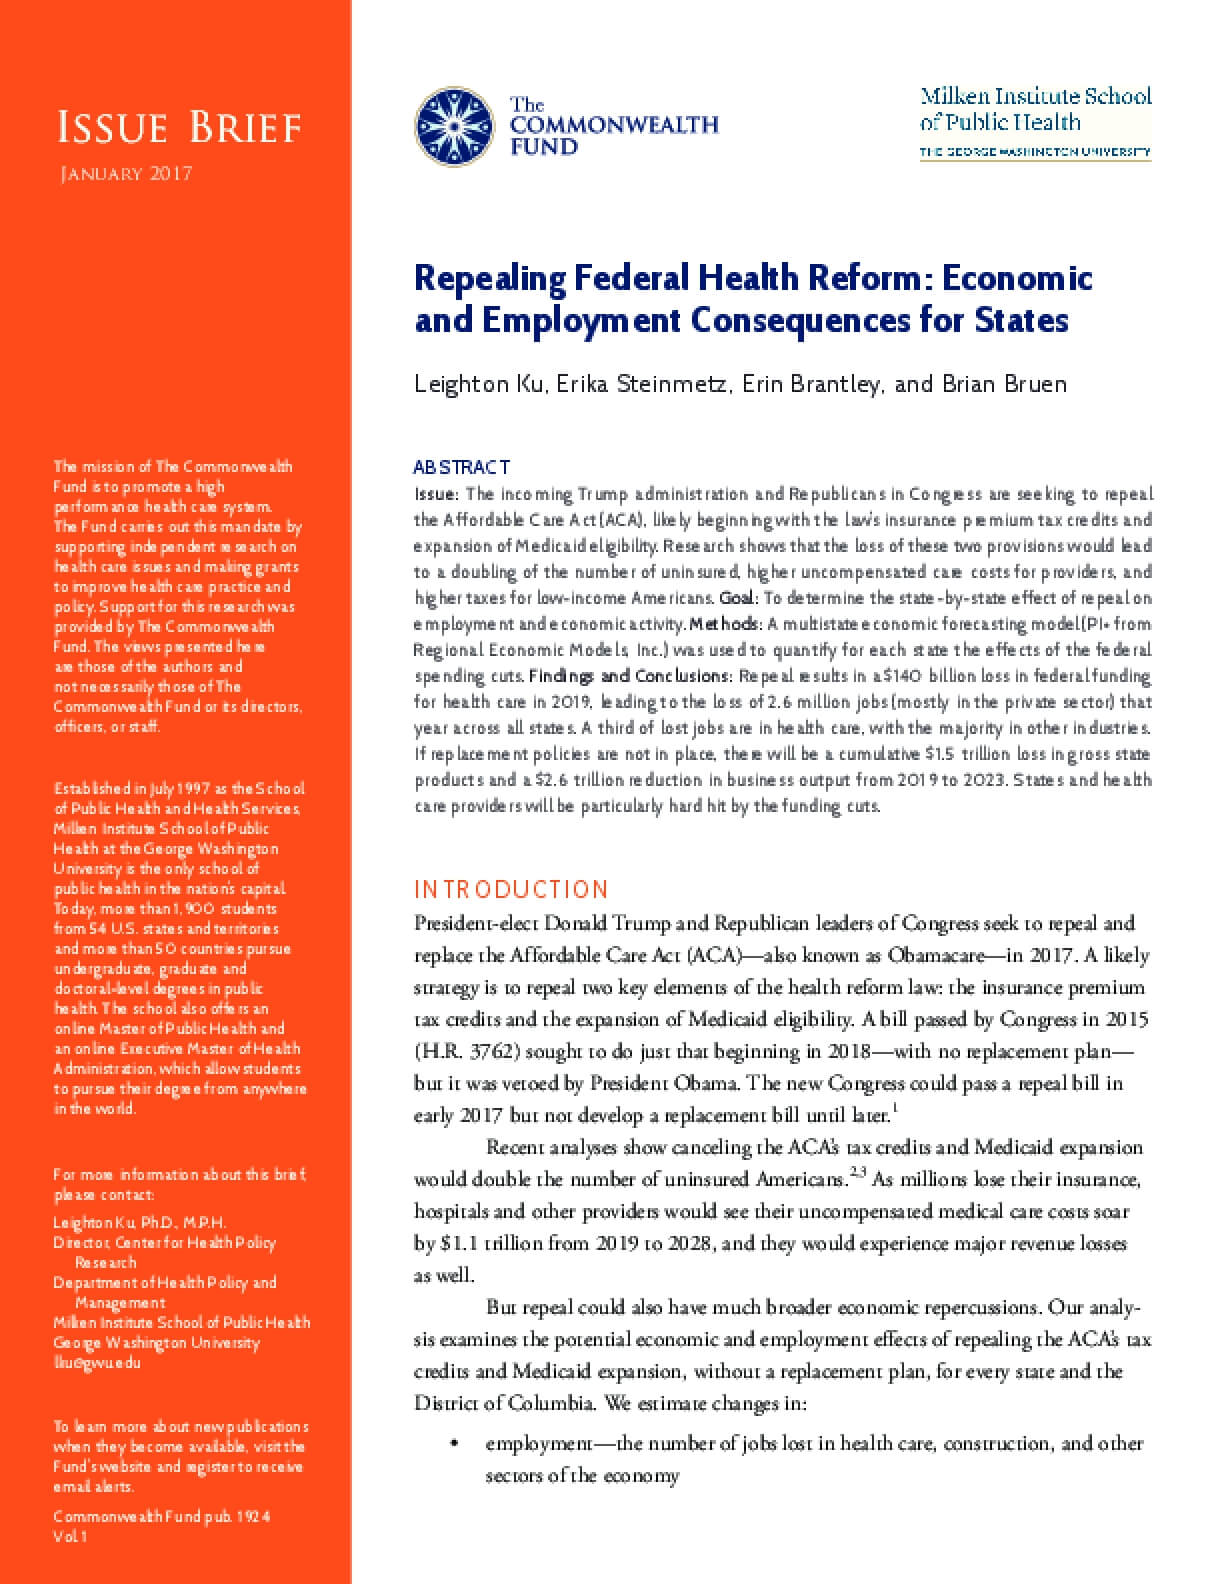 us healthcare reform essay The paper healthcare reform is about a national health program in us the us spends twice as much as other industrialized nations on health care, $8,160 per capita.